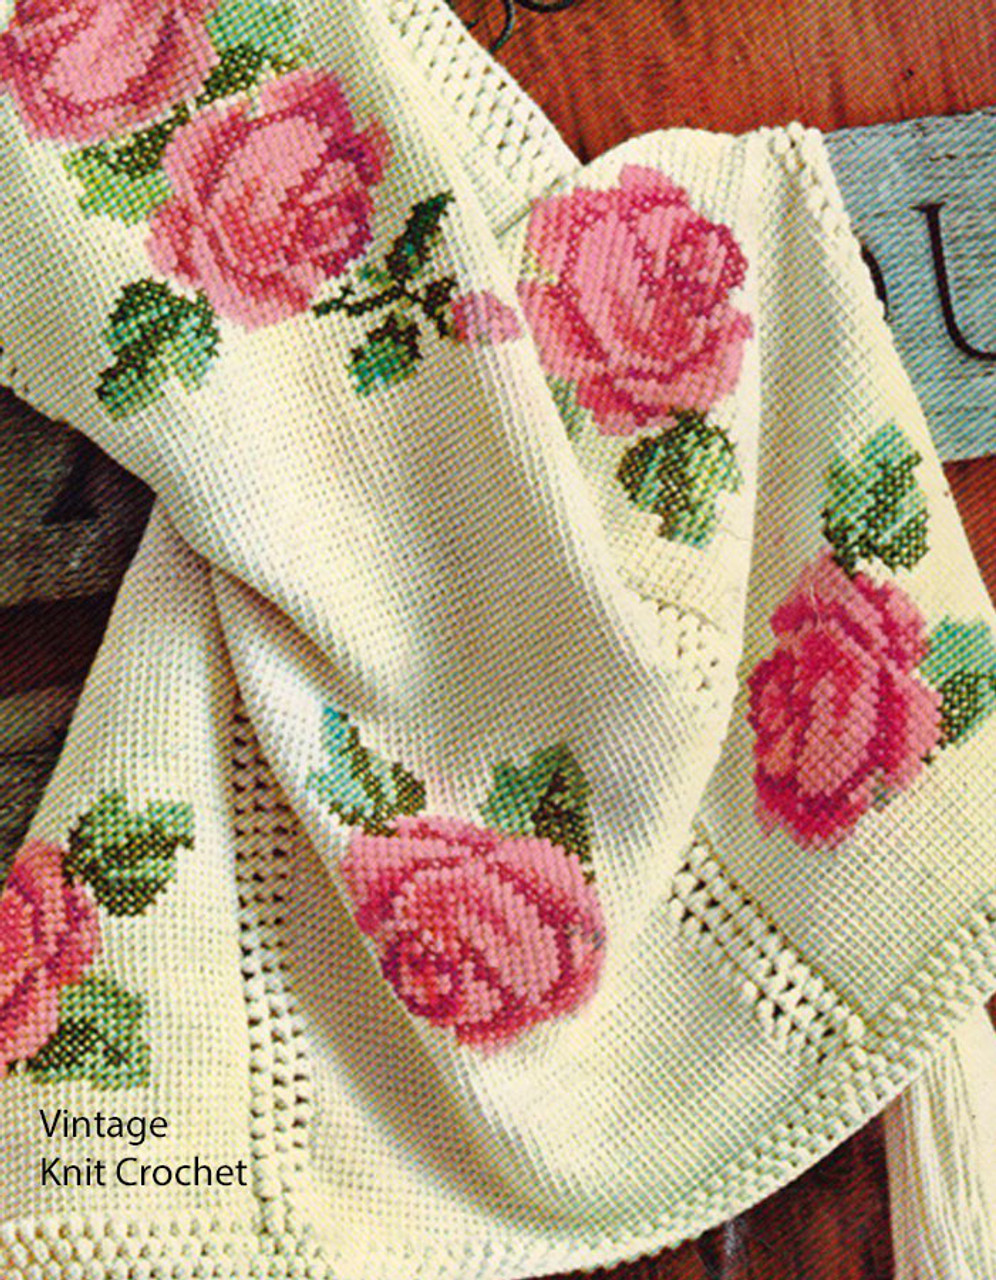 Vintage Rose Crochet Tapestry Pattern, Long Tassels